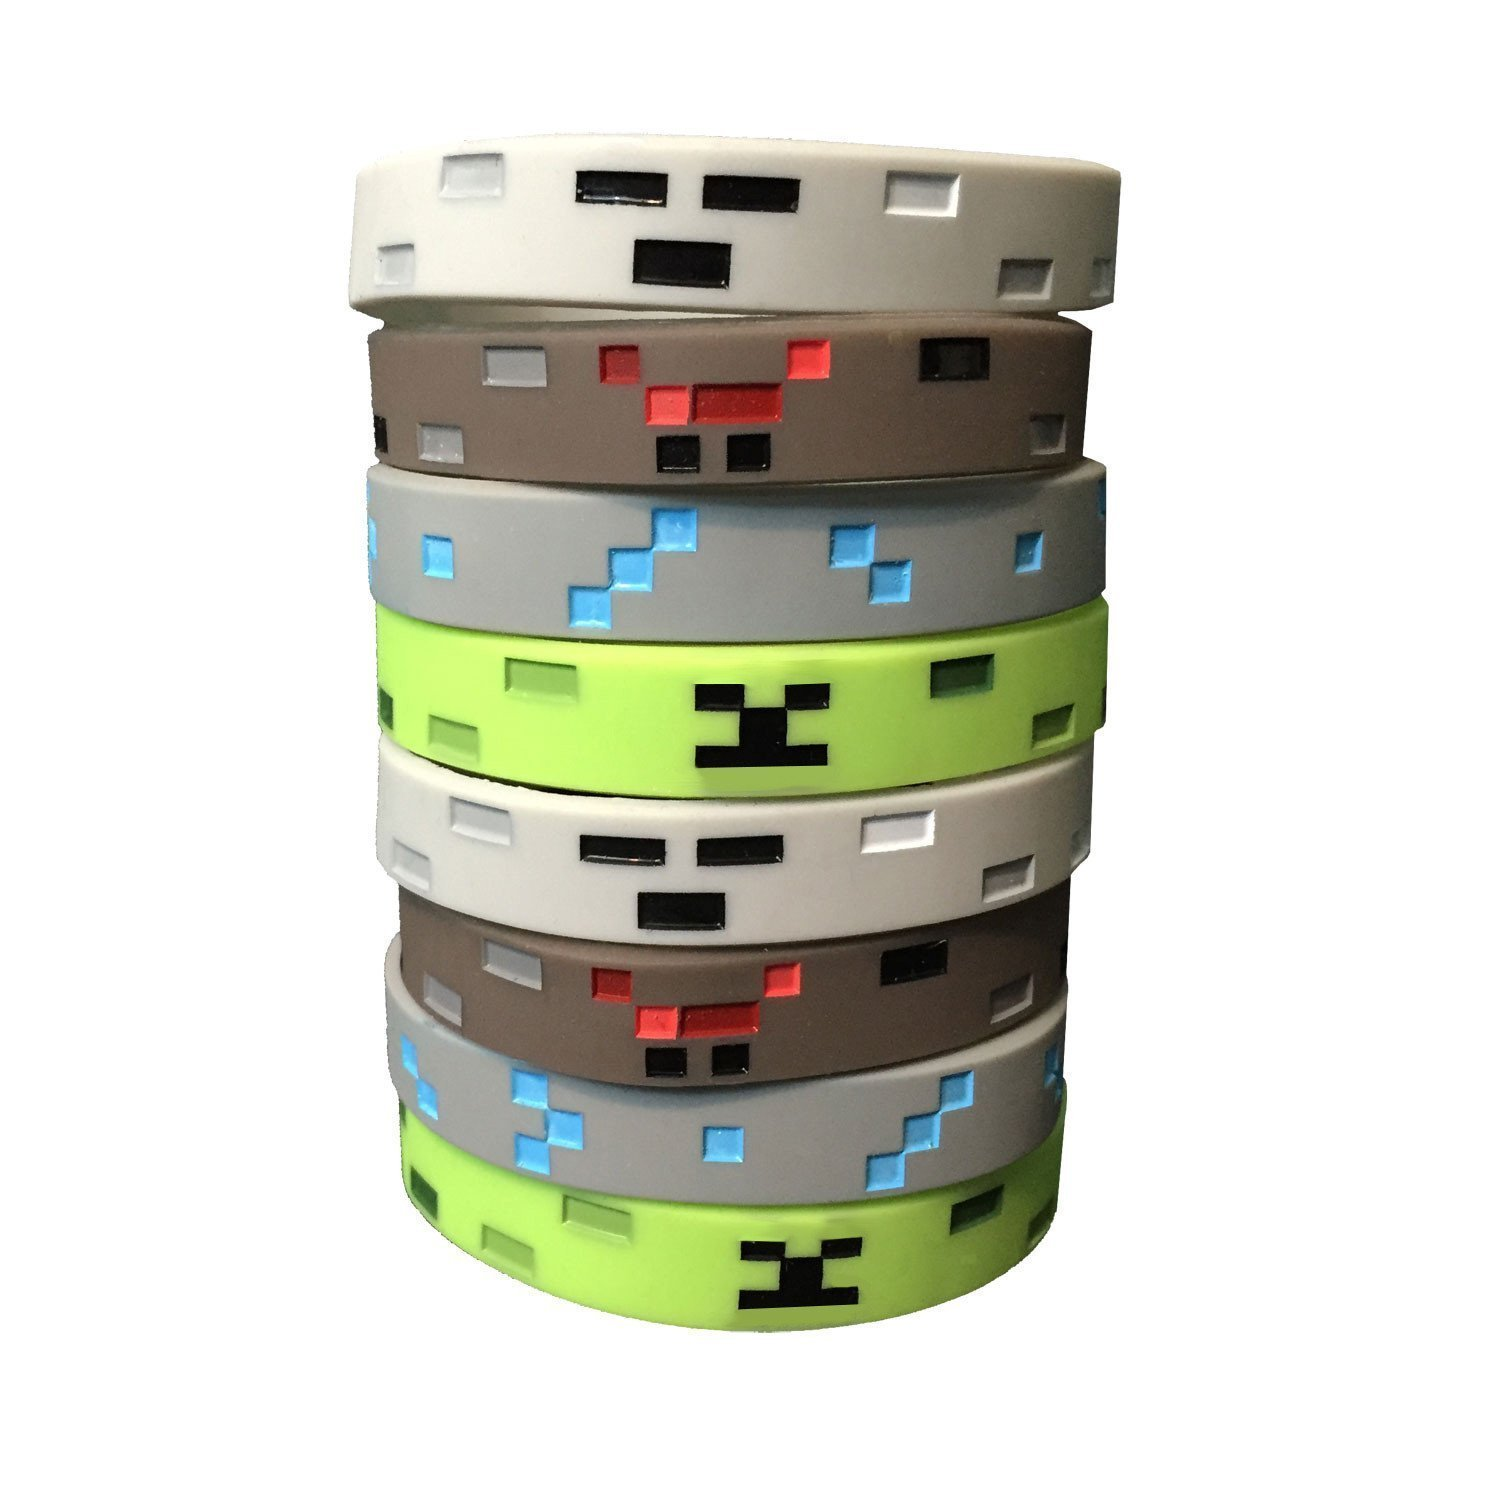 Pixel Style Miner Character Wristbands (8 Pack)- Pixel Style Video Game Designs - Spider, Creeper, Skeleton, Diamond - 2 of Each Style Pixel Party Designs B-DCSS-8